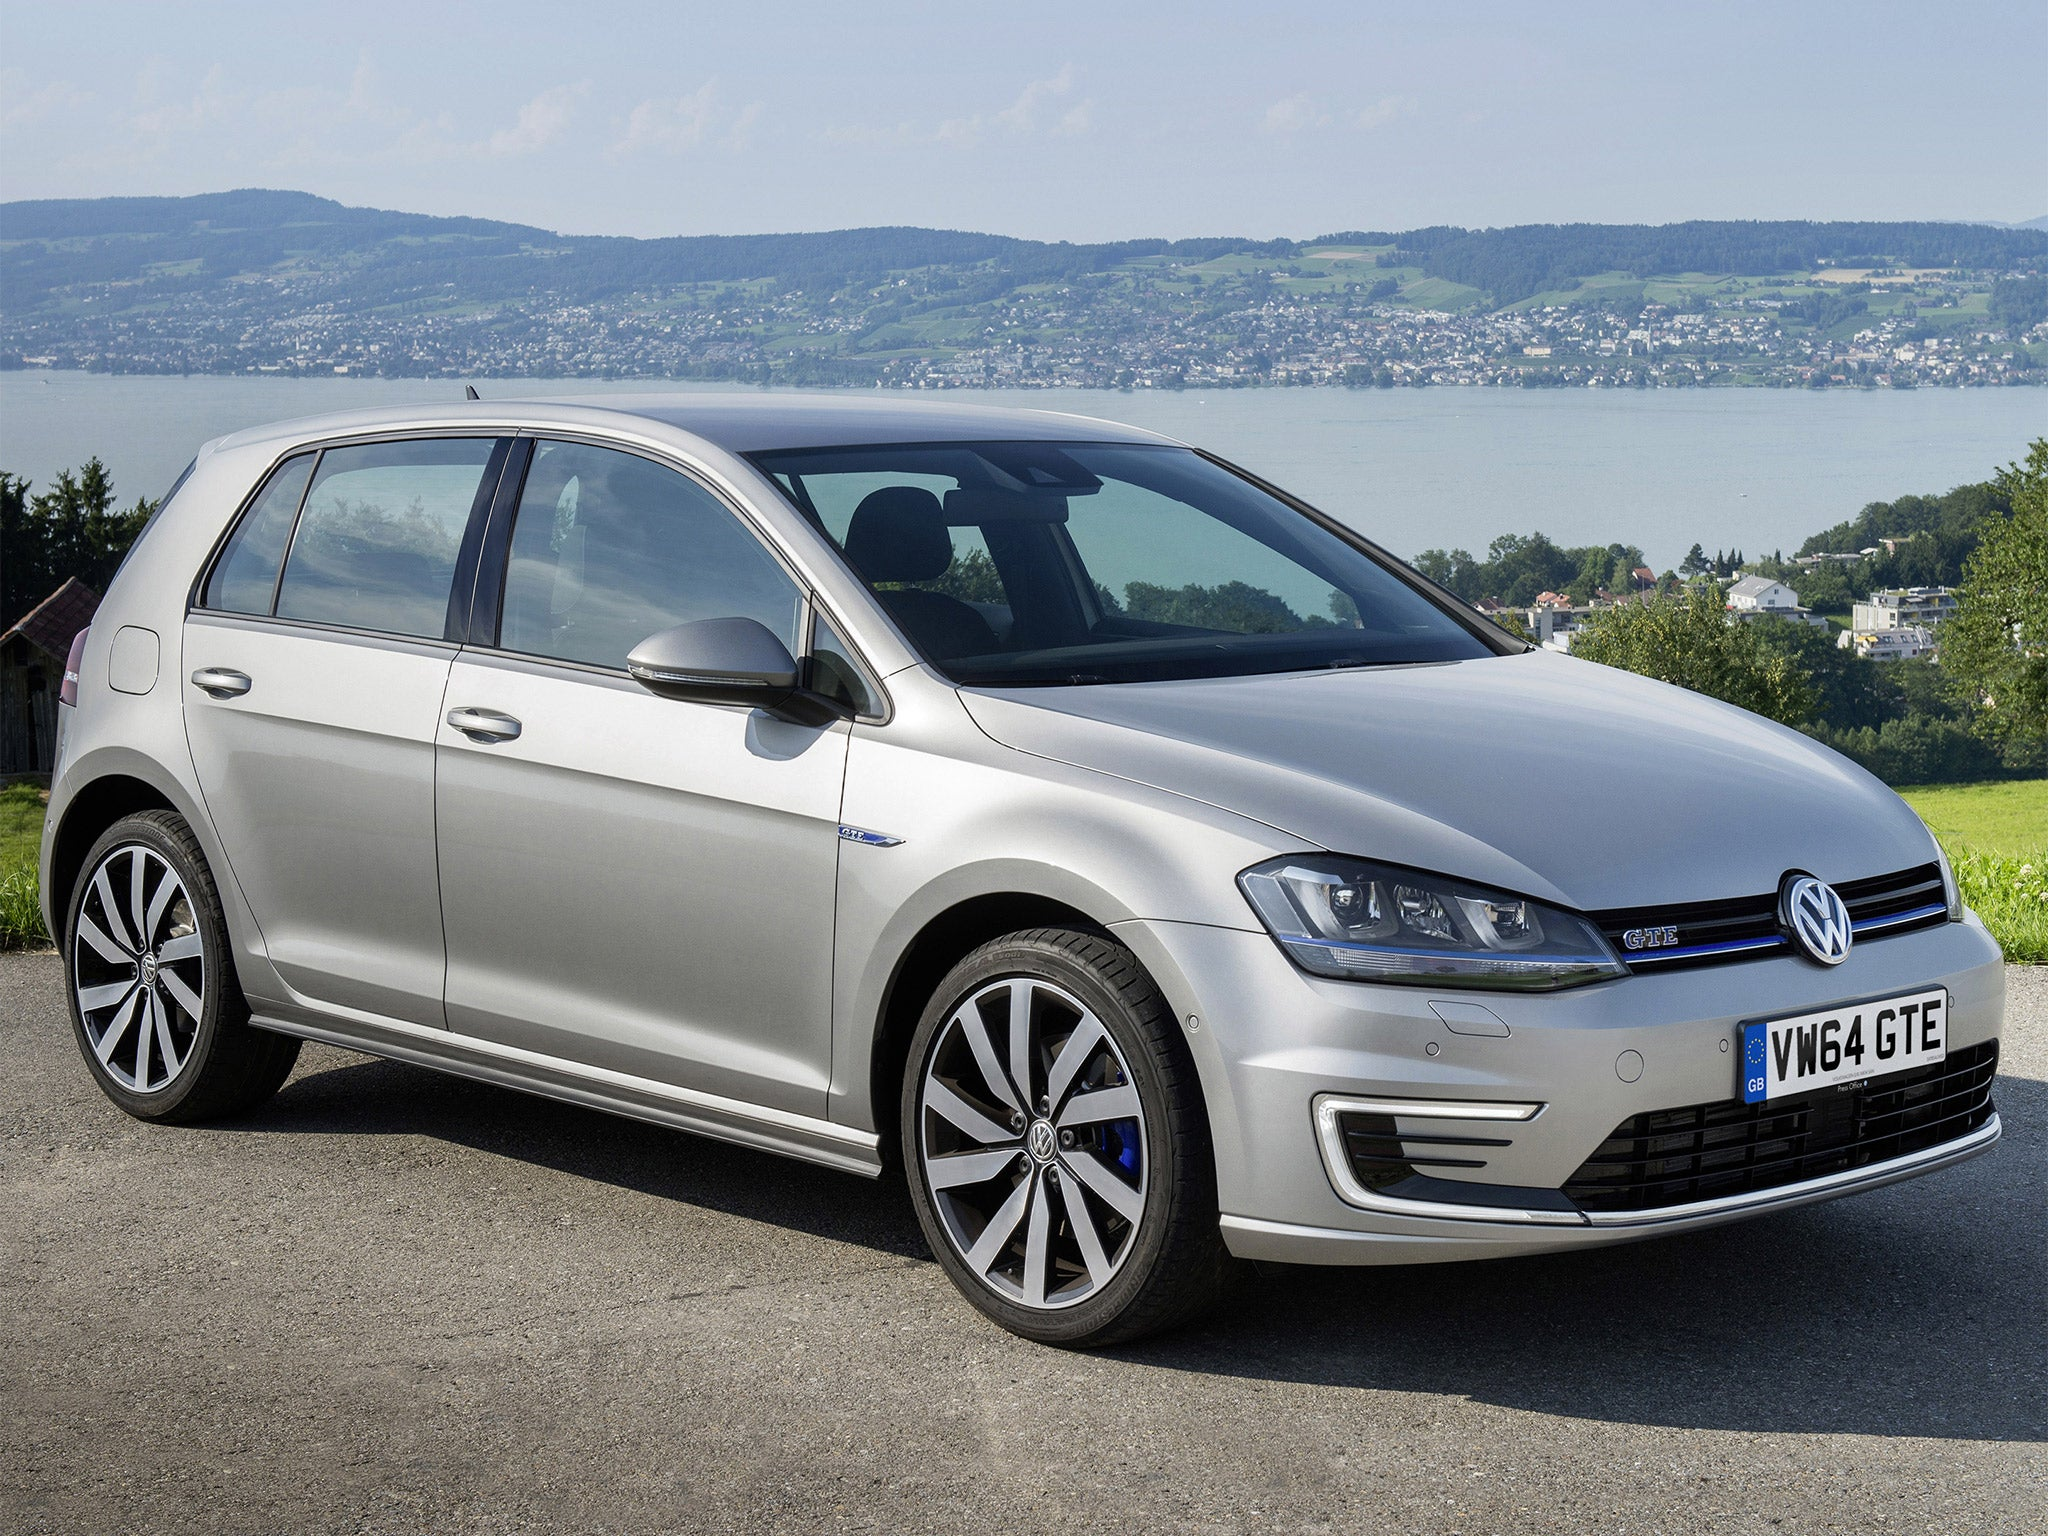 vw golf gte hybrid motoring review the perfect drive for. Black Bedroom Furniture Sets. Home Design Ideas